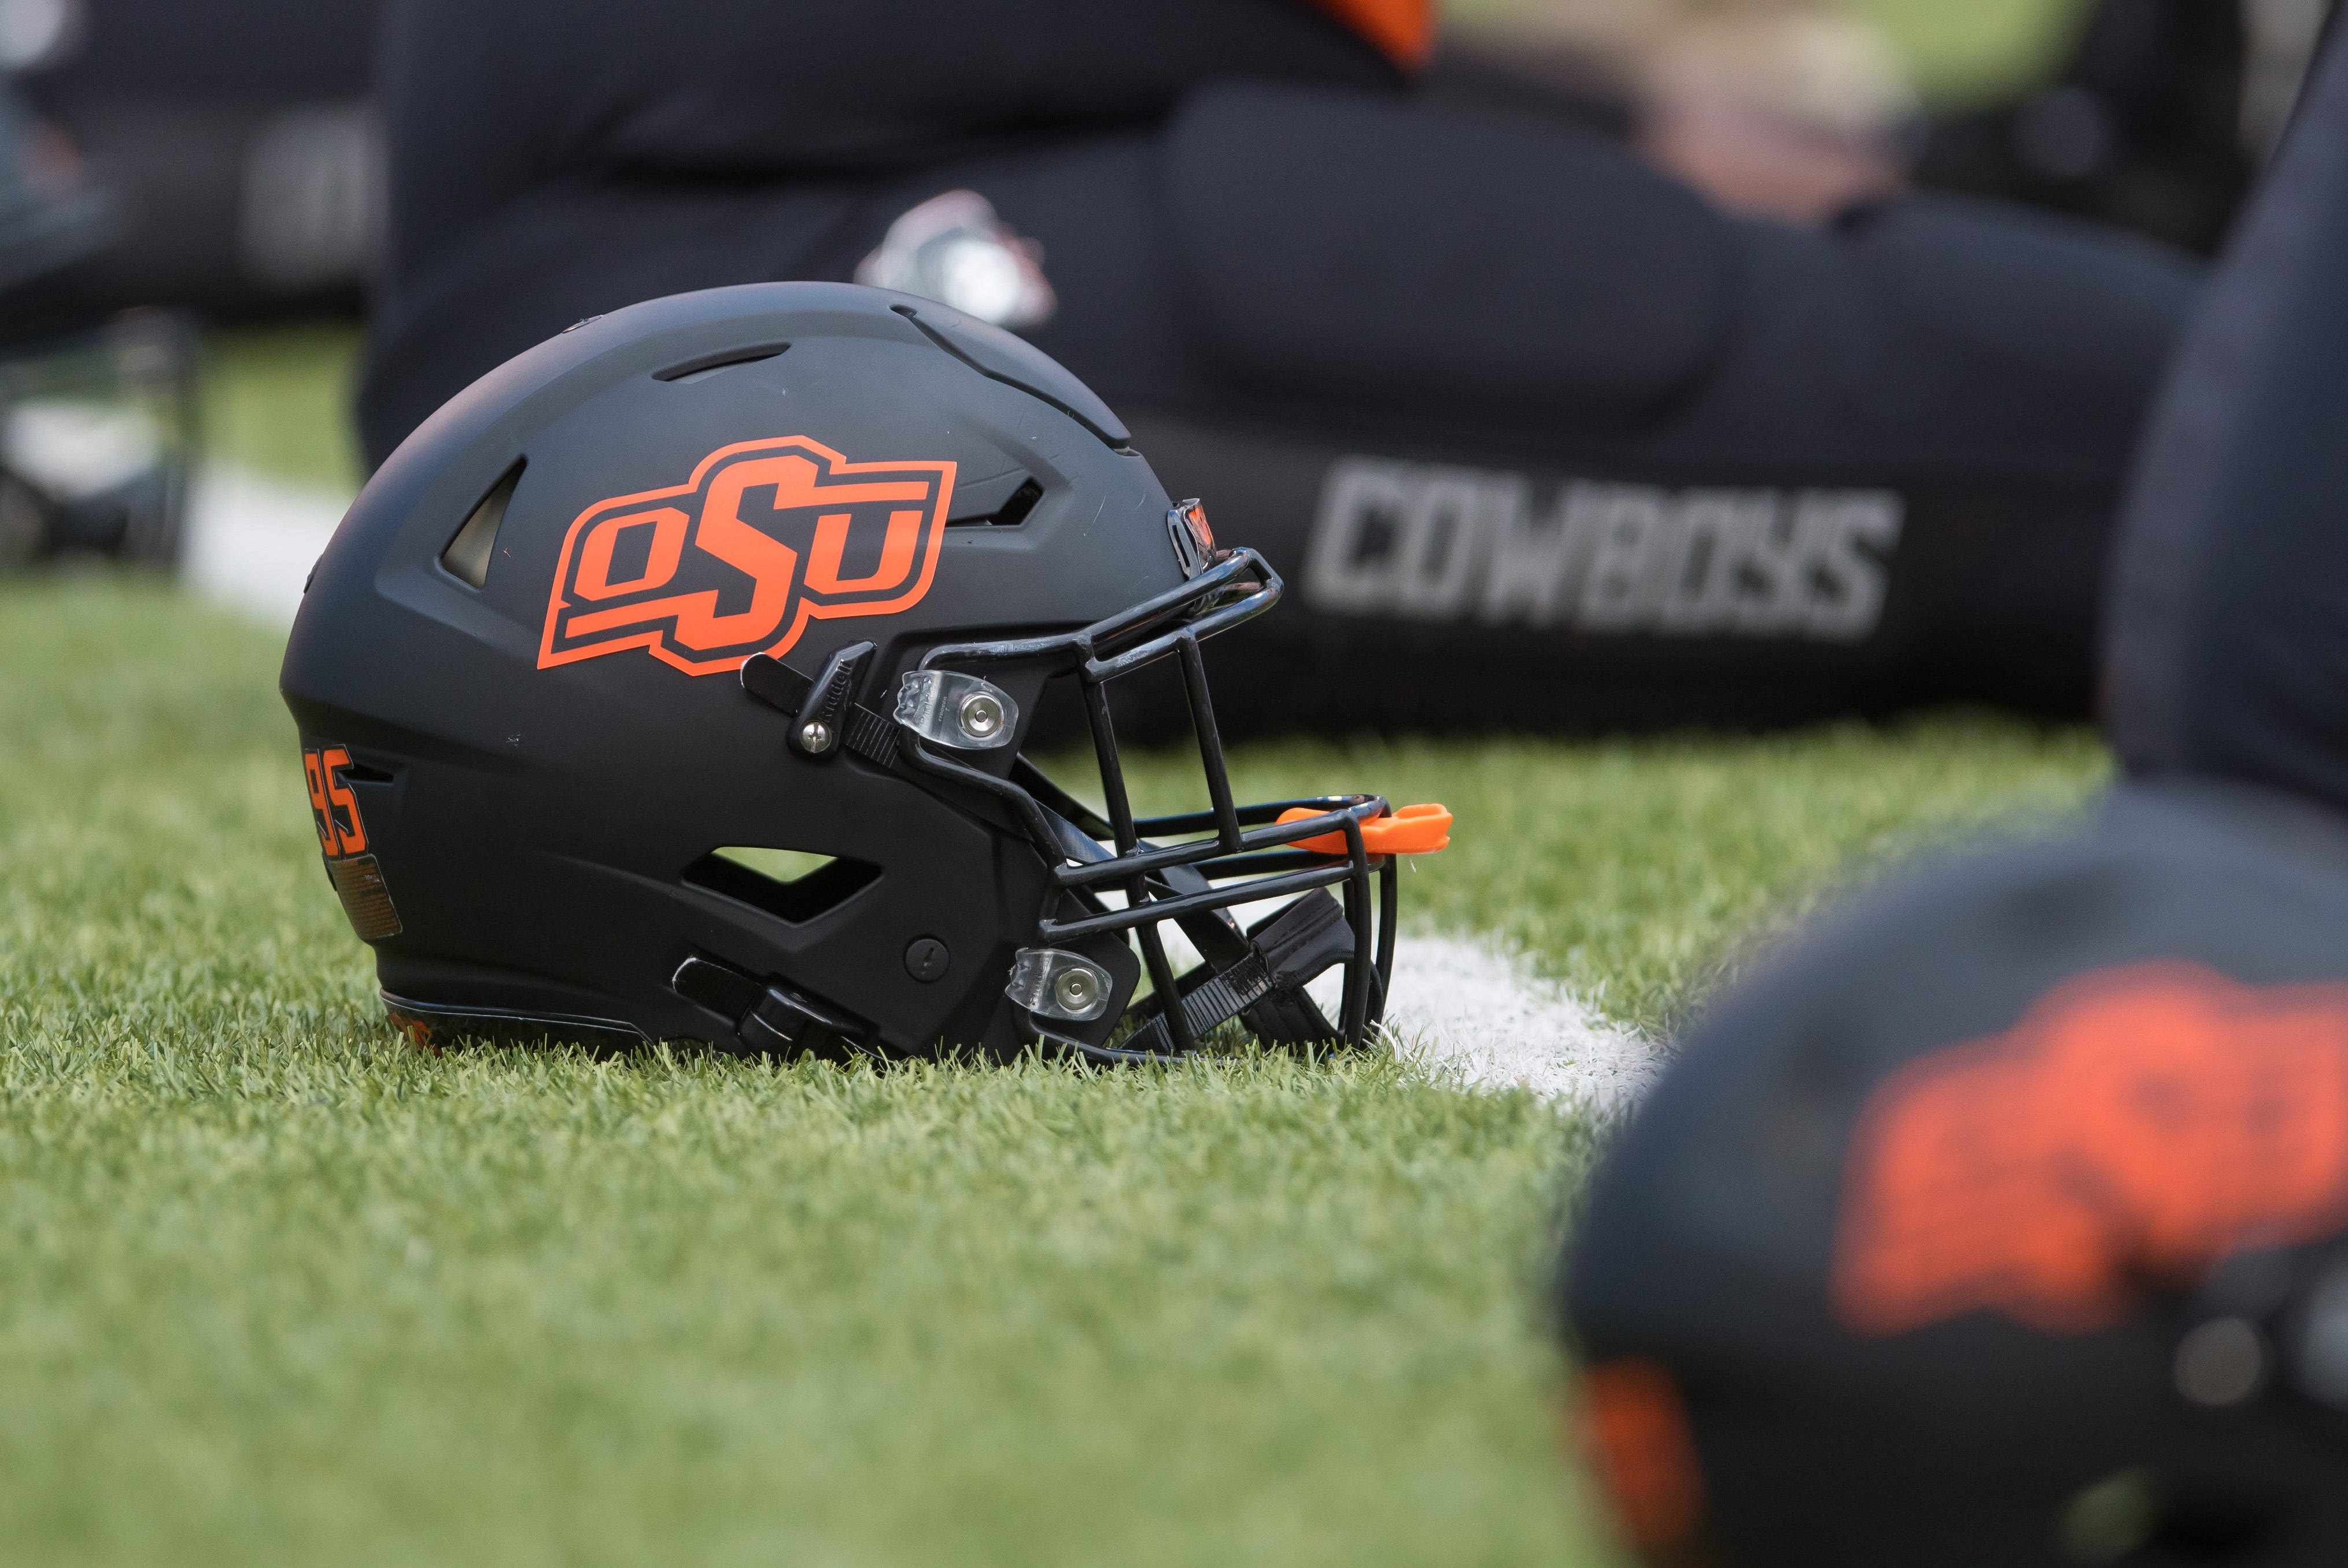 Oklahoma State football equipment manager injured in alleged assault by Oklahoma fans